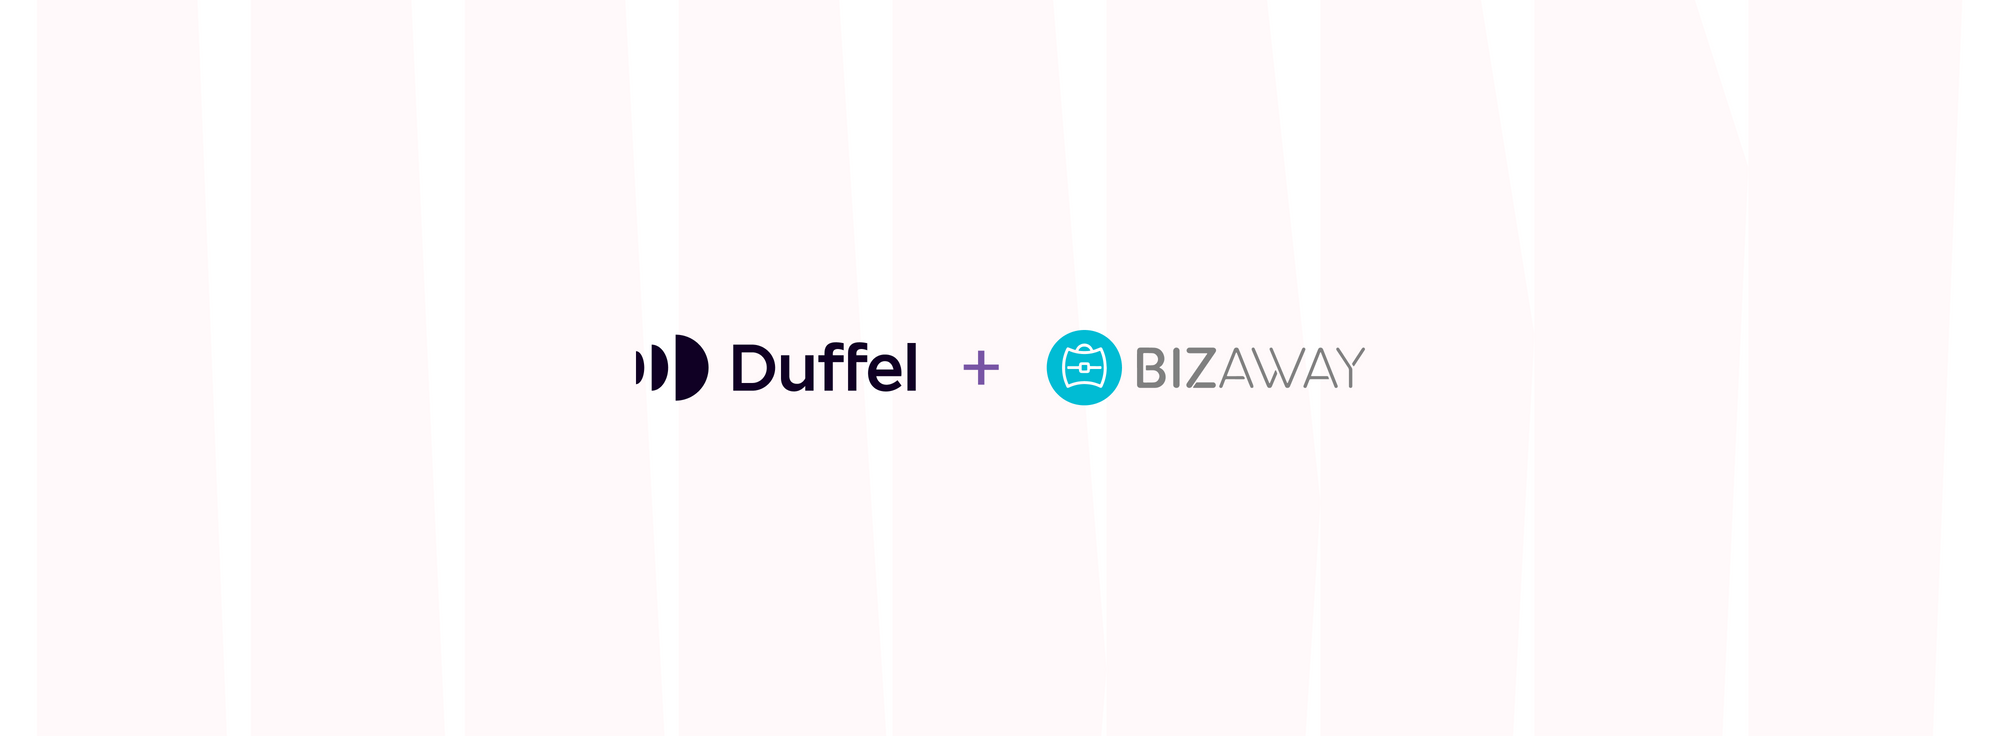 BizAway partners with Duffel to broaden the range of flights and enhance its retailing experience